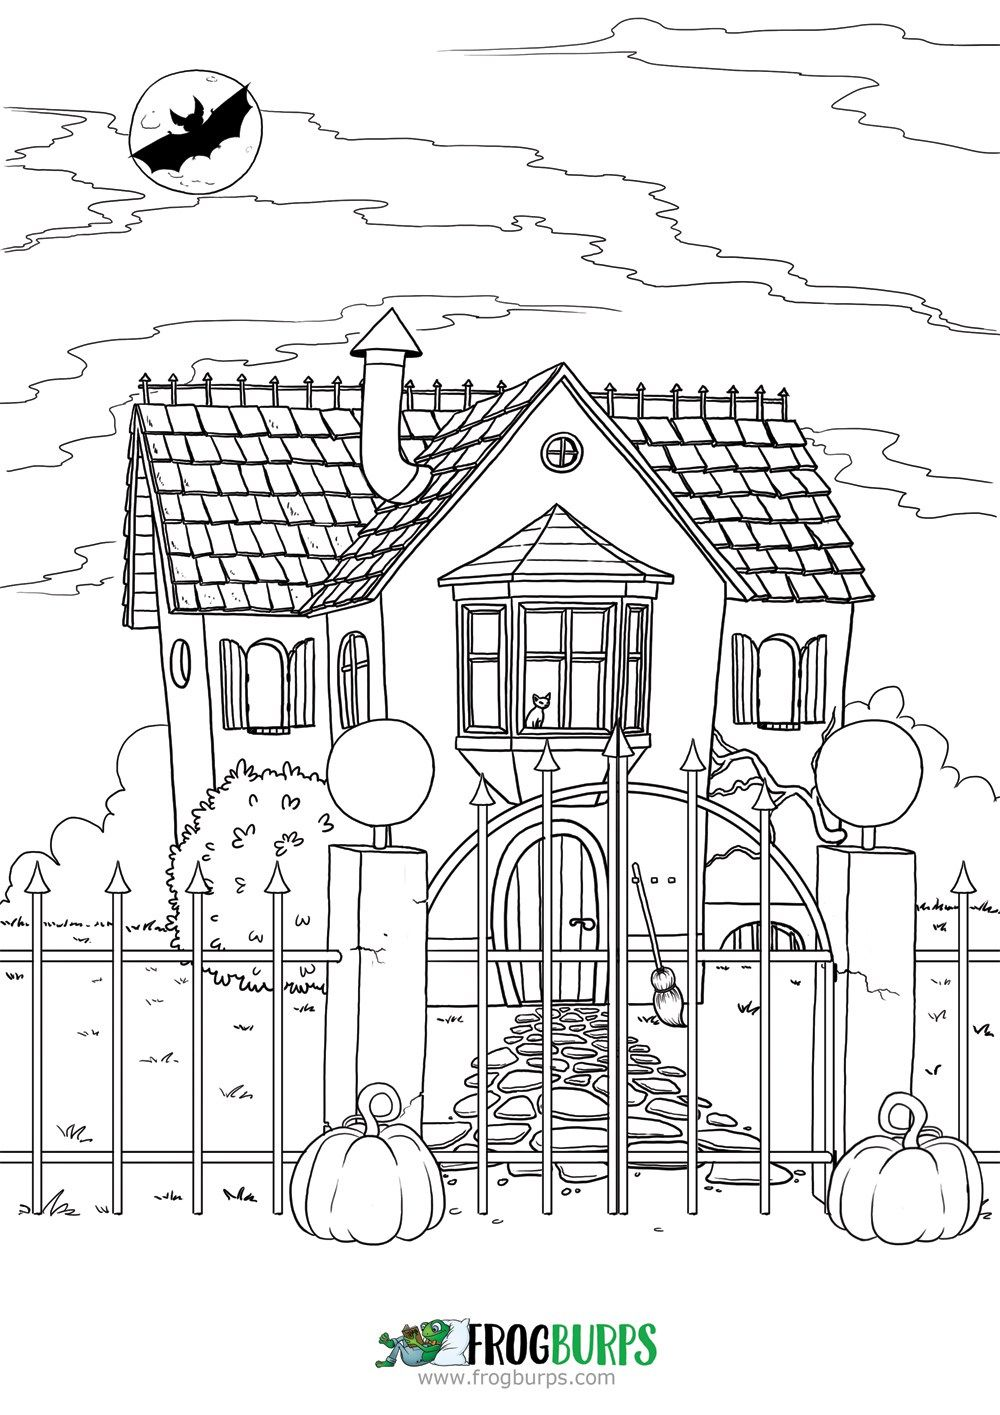 Halloween house coloring page free coloring pages for children coloringpages coloring children free freebies printables